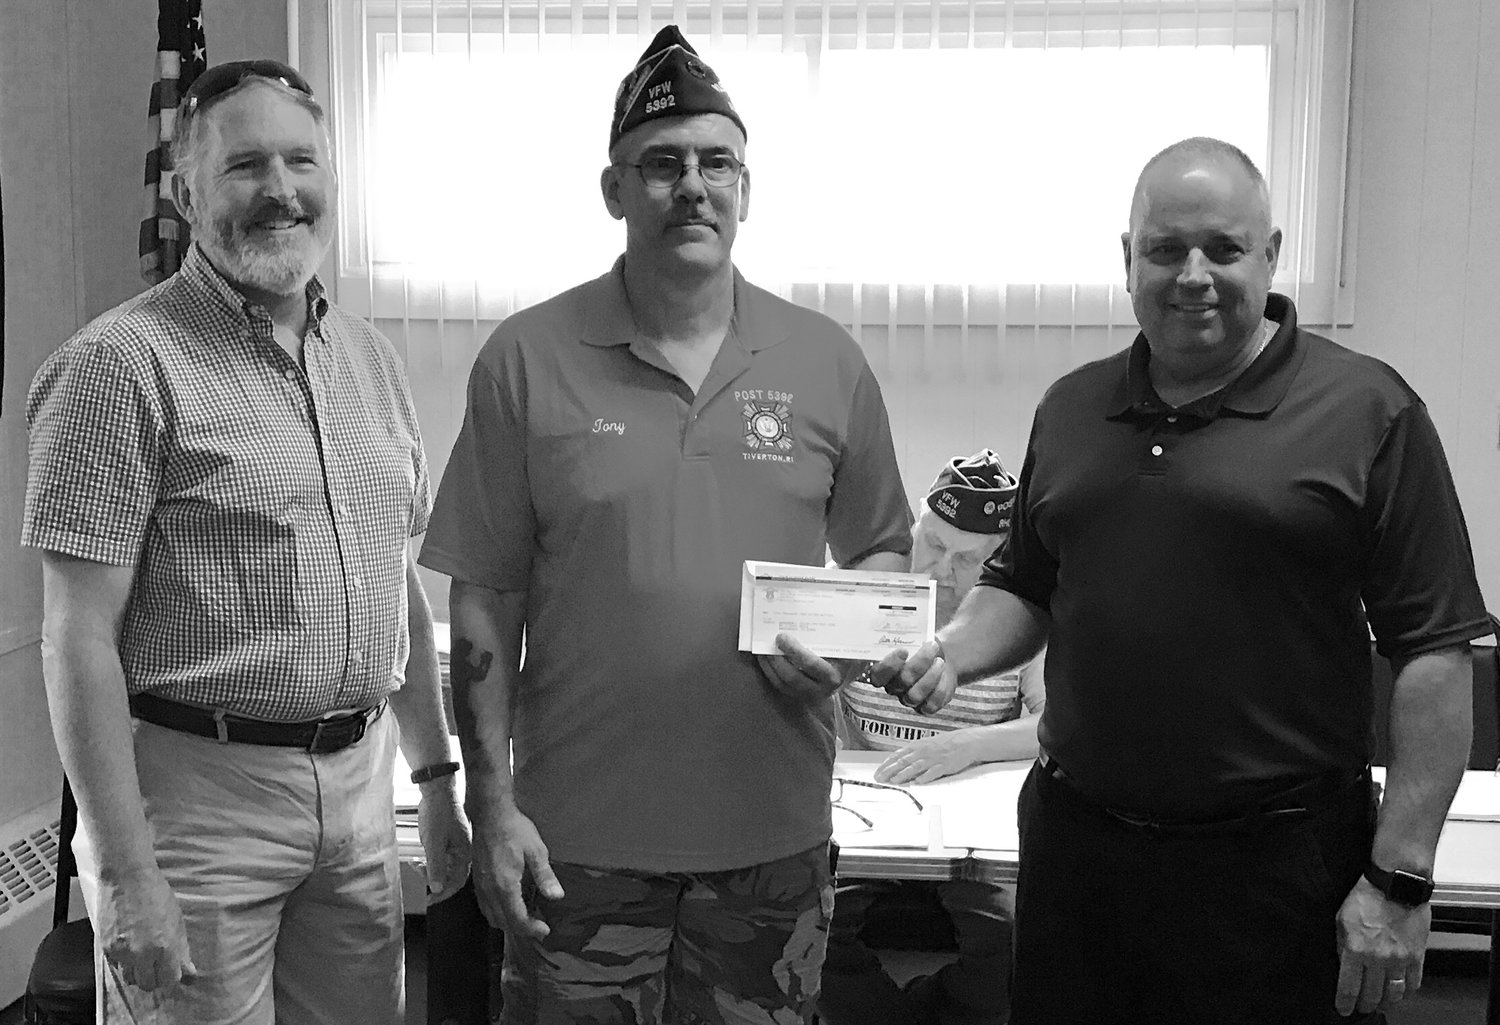 Rep. John G. Edwards, left, and Rep. Dennis M. Canario, right, present a legislative grant check to Tony Lacerda, commander of Post 5392, Veterans of Foreign Wars in Tiverton.